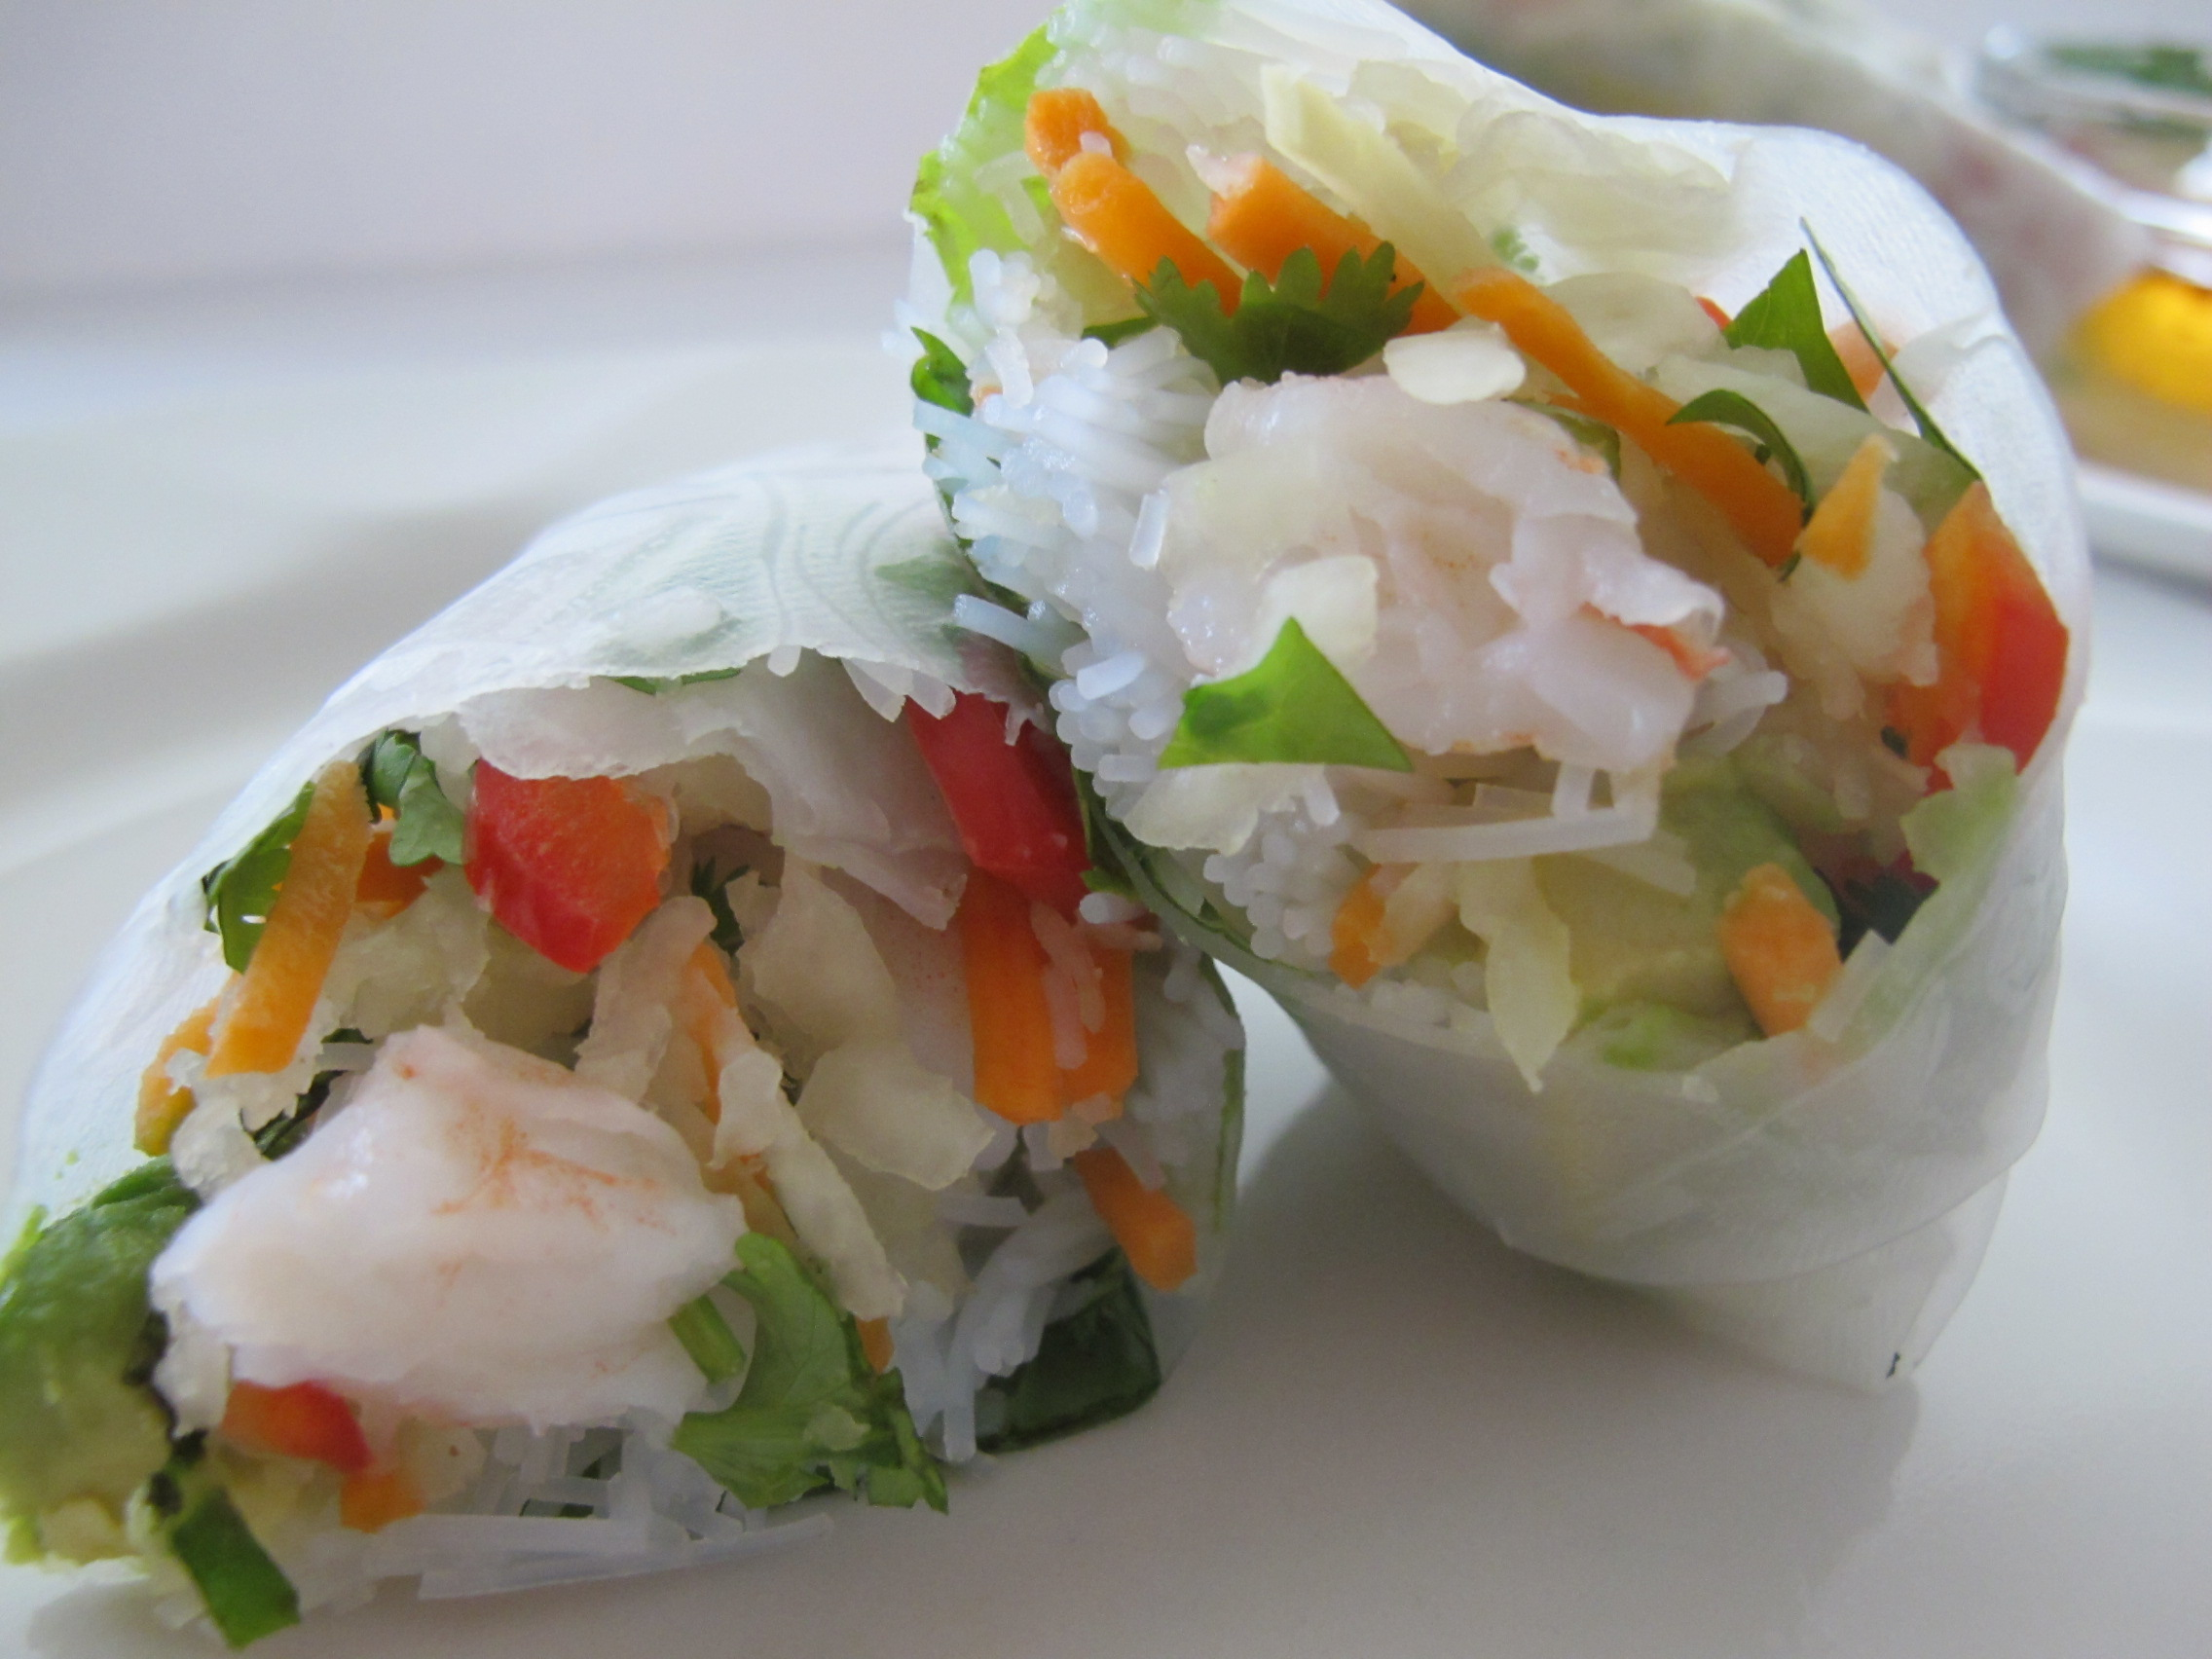 Shrimp Summer Rolls with Shredded Kohlrabi and Spicy Peanut Sauce ...